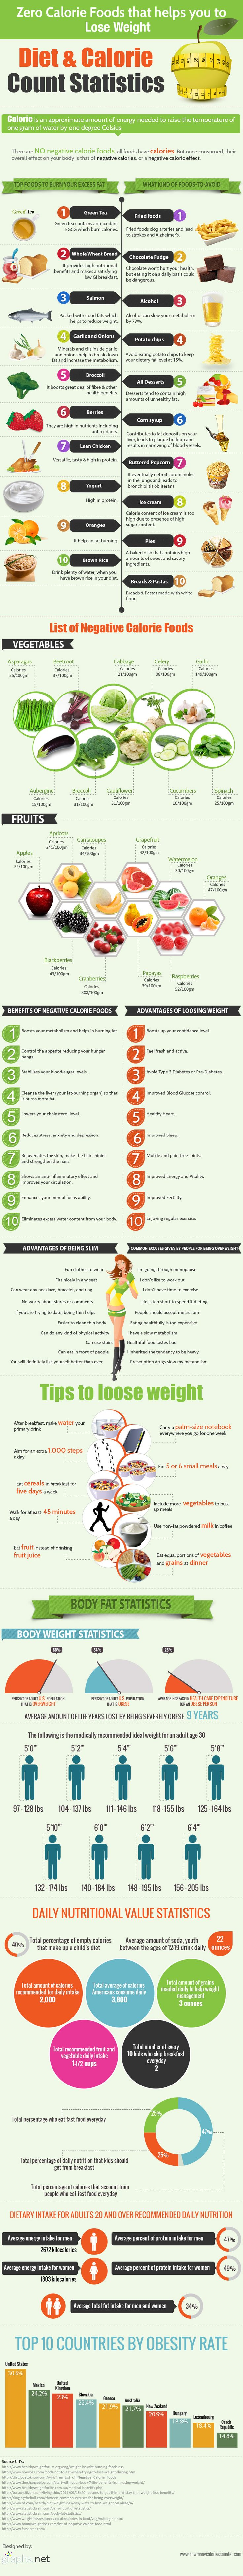 "Tips to Lose Weight - ""Diet and Calorie"" - ""Lose Weight With These Zero Calorie Foods"